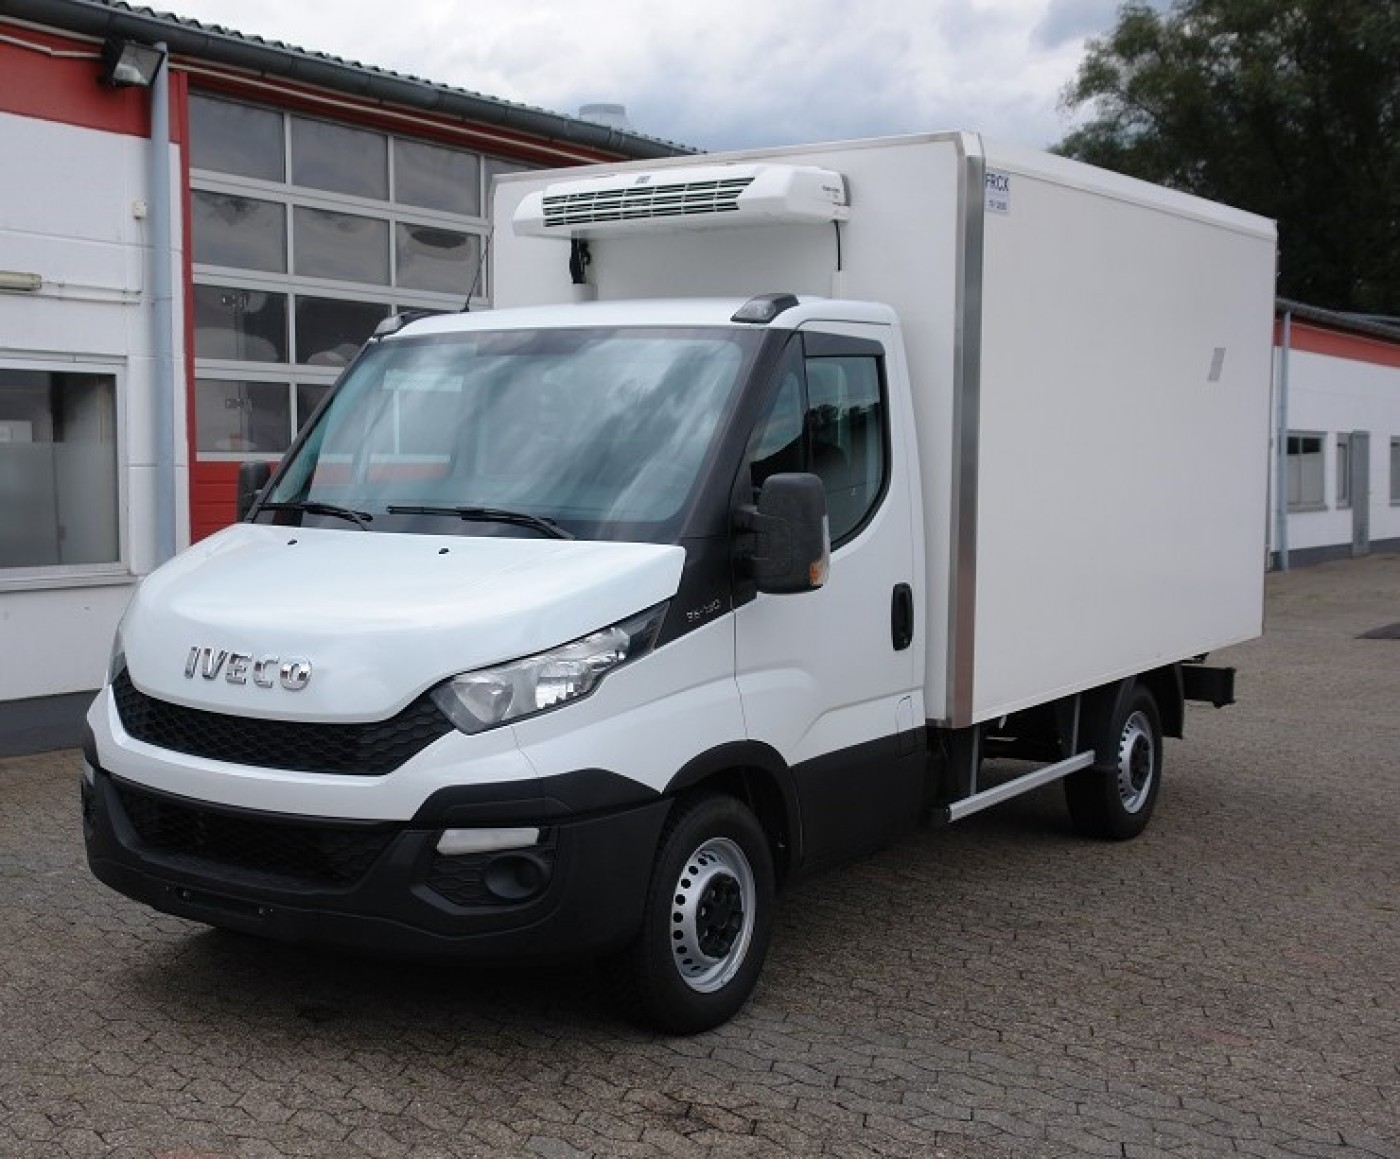 Iveco - Daily 35S13 Tiefkühlkoffer Thermo King V300MAX Klima 4 neue Reifen FRC 10/2020 TÜV